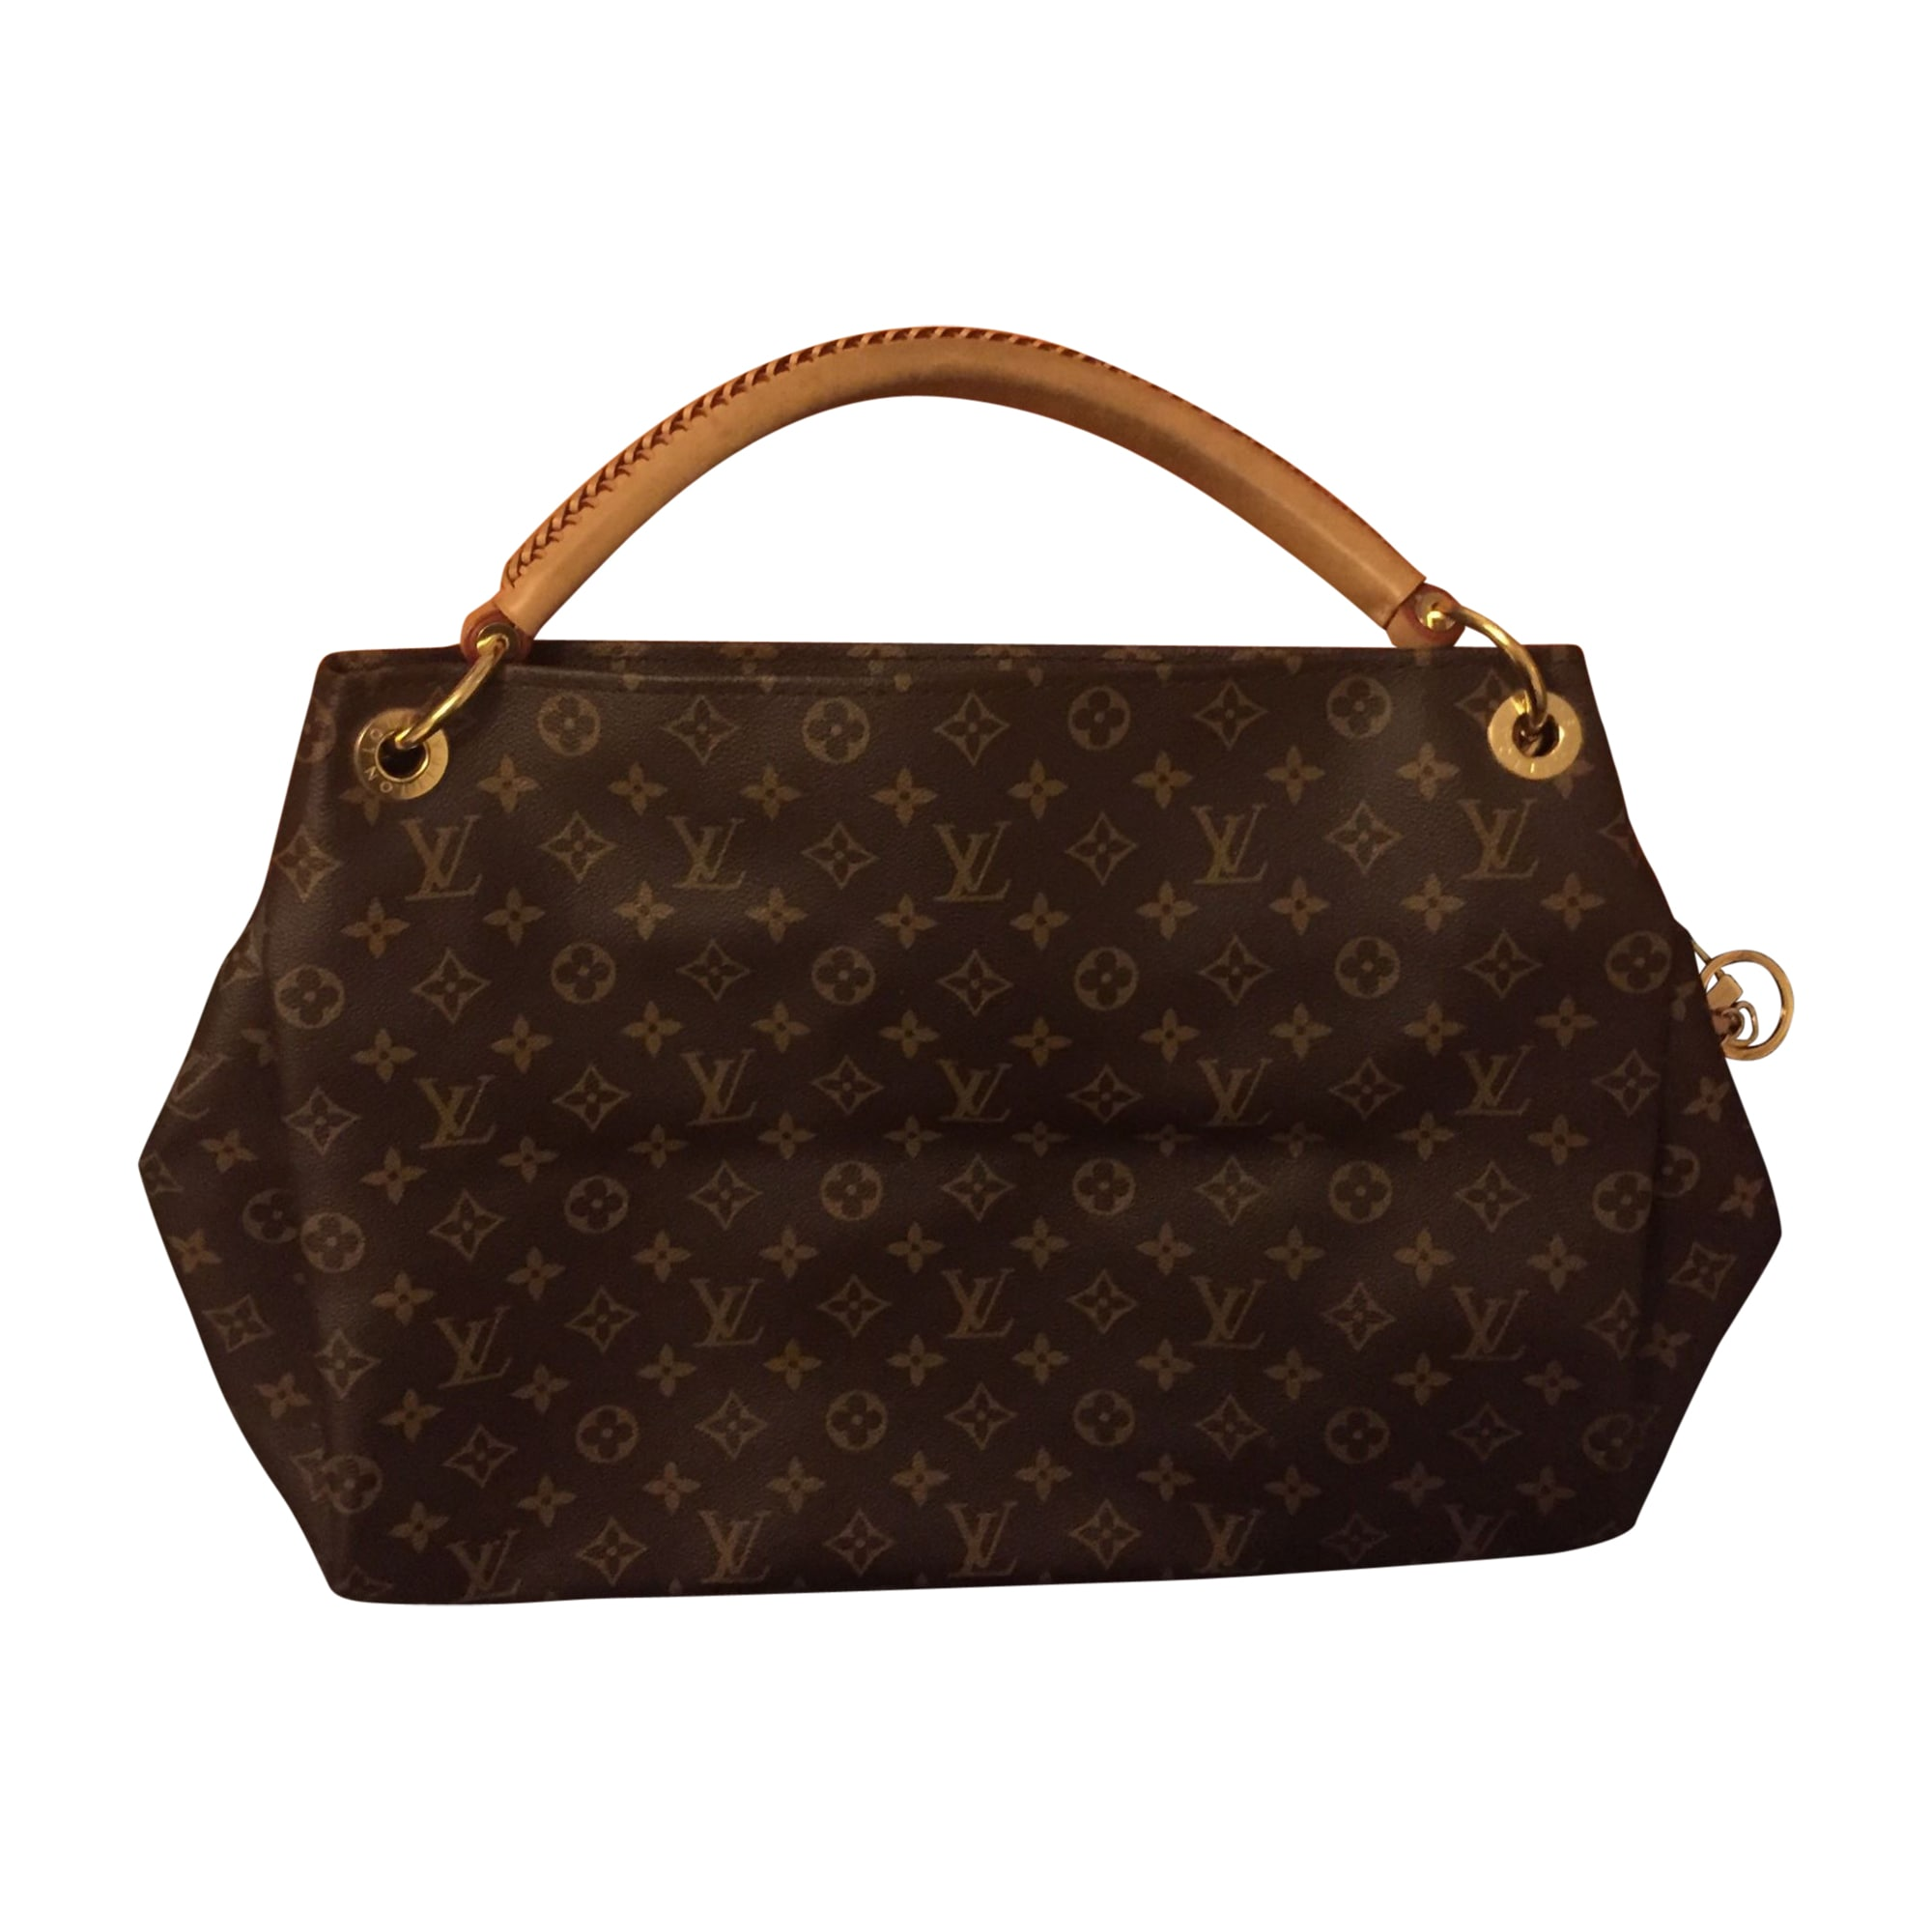 Sac à main en cuir LOUIS VUITTON artsy marron - 7730887 b986a0f7452